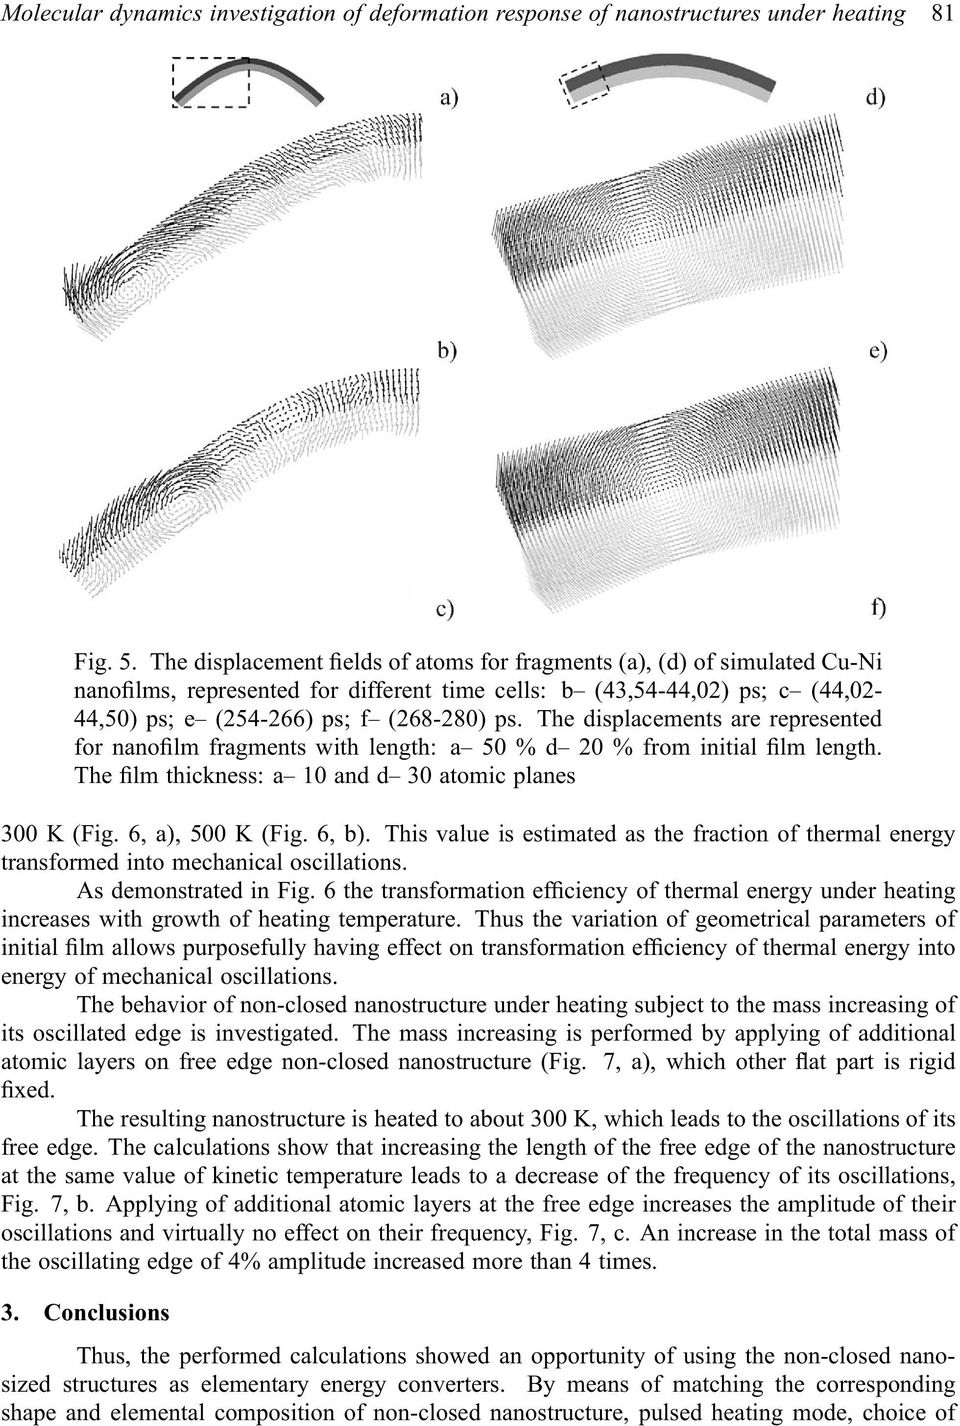 The displacements are represented for nanofilm fragments with length: a 50 % d 20 % from initial film length. The film thickness: a 10 and d 30 atomic planes 300 K (Fig. 6, a), 500 K (Fig. 6, b).